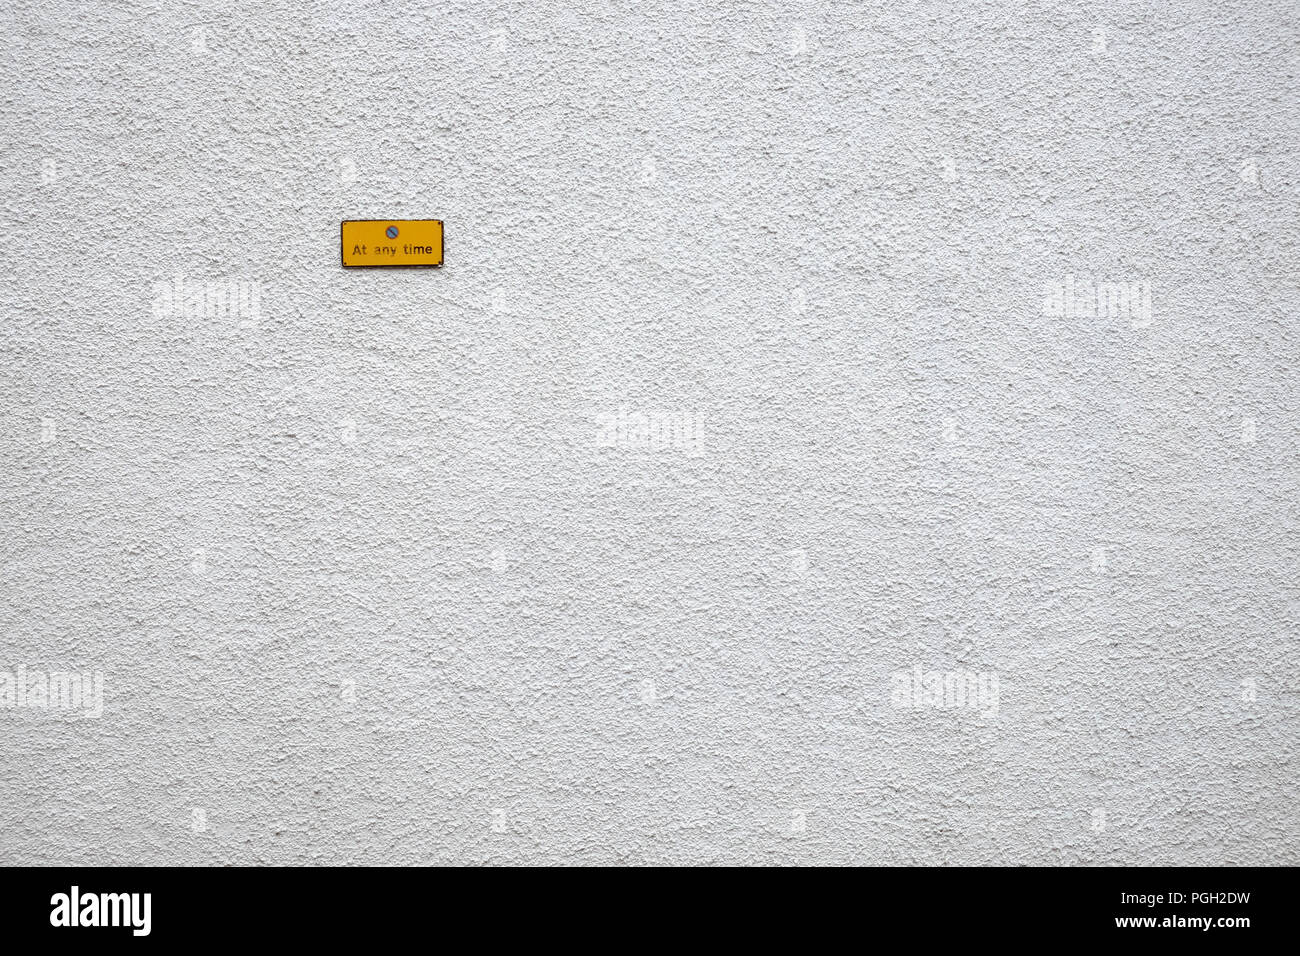 No parking sign on Abercorn Drive, Ballyclare, County Antrim, Northern Ireland. - Stock Image